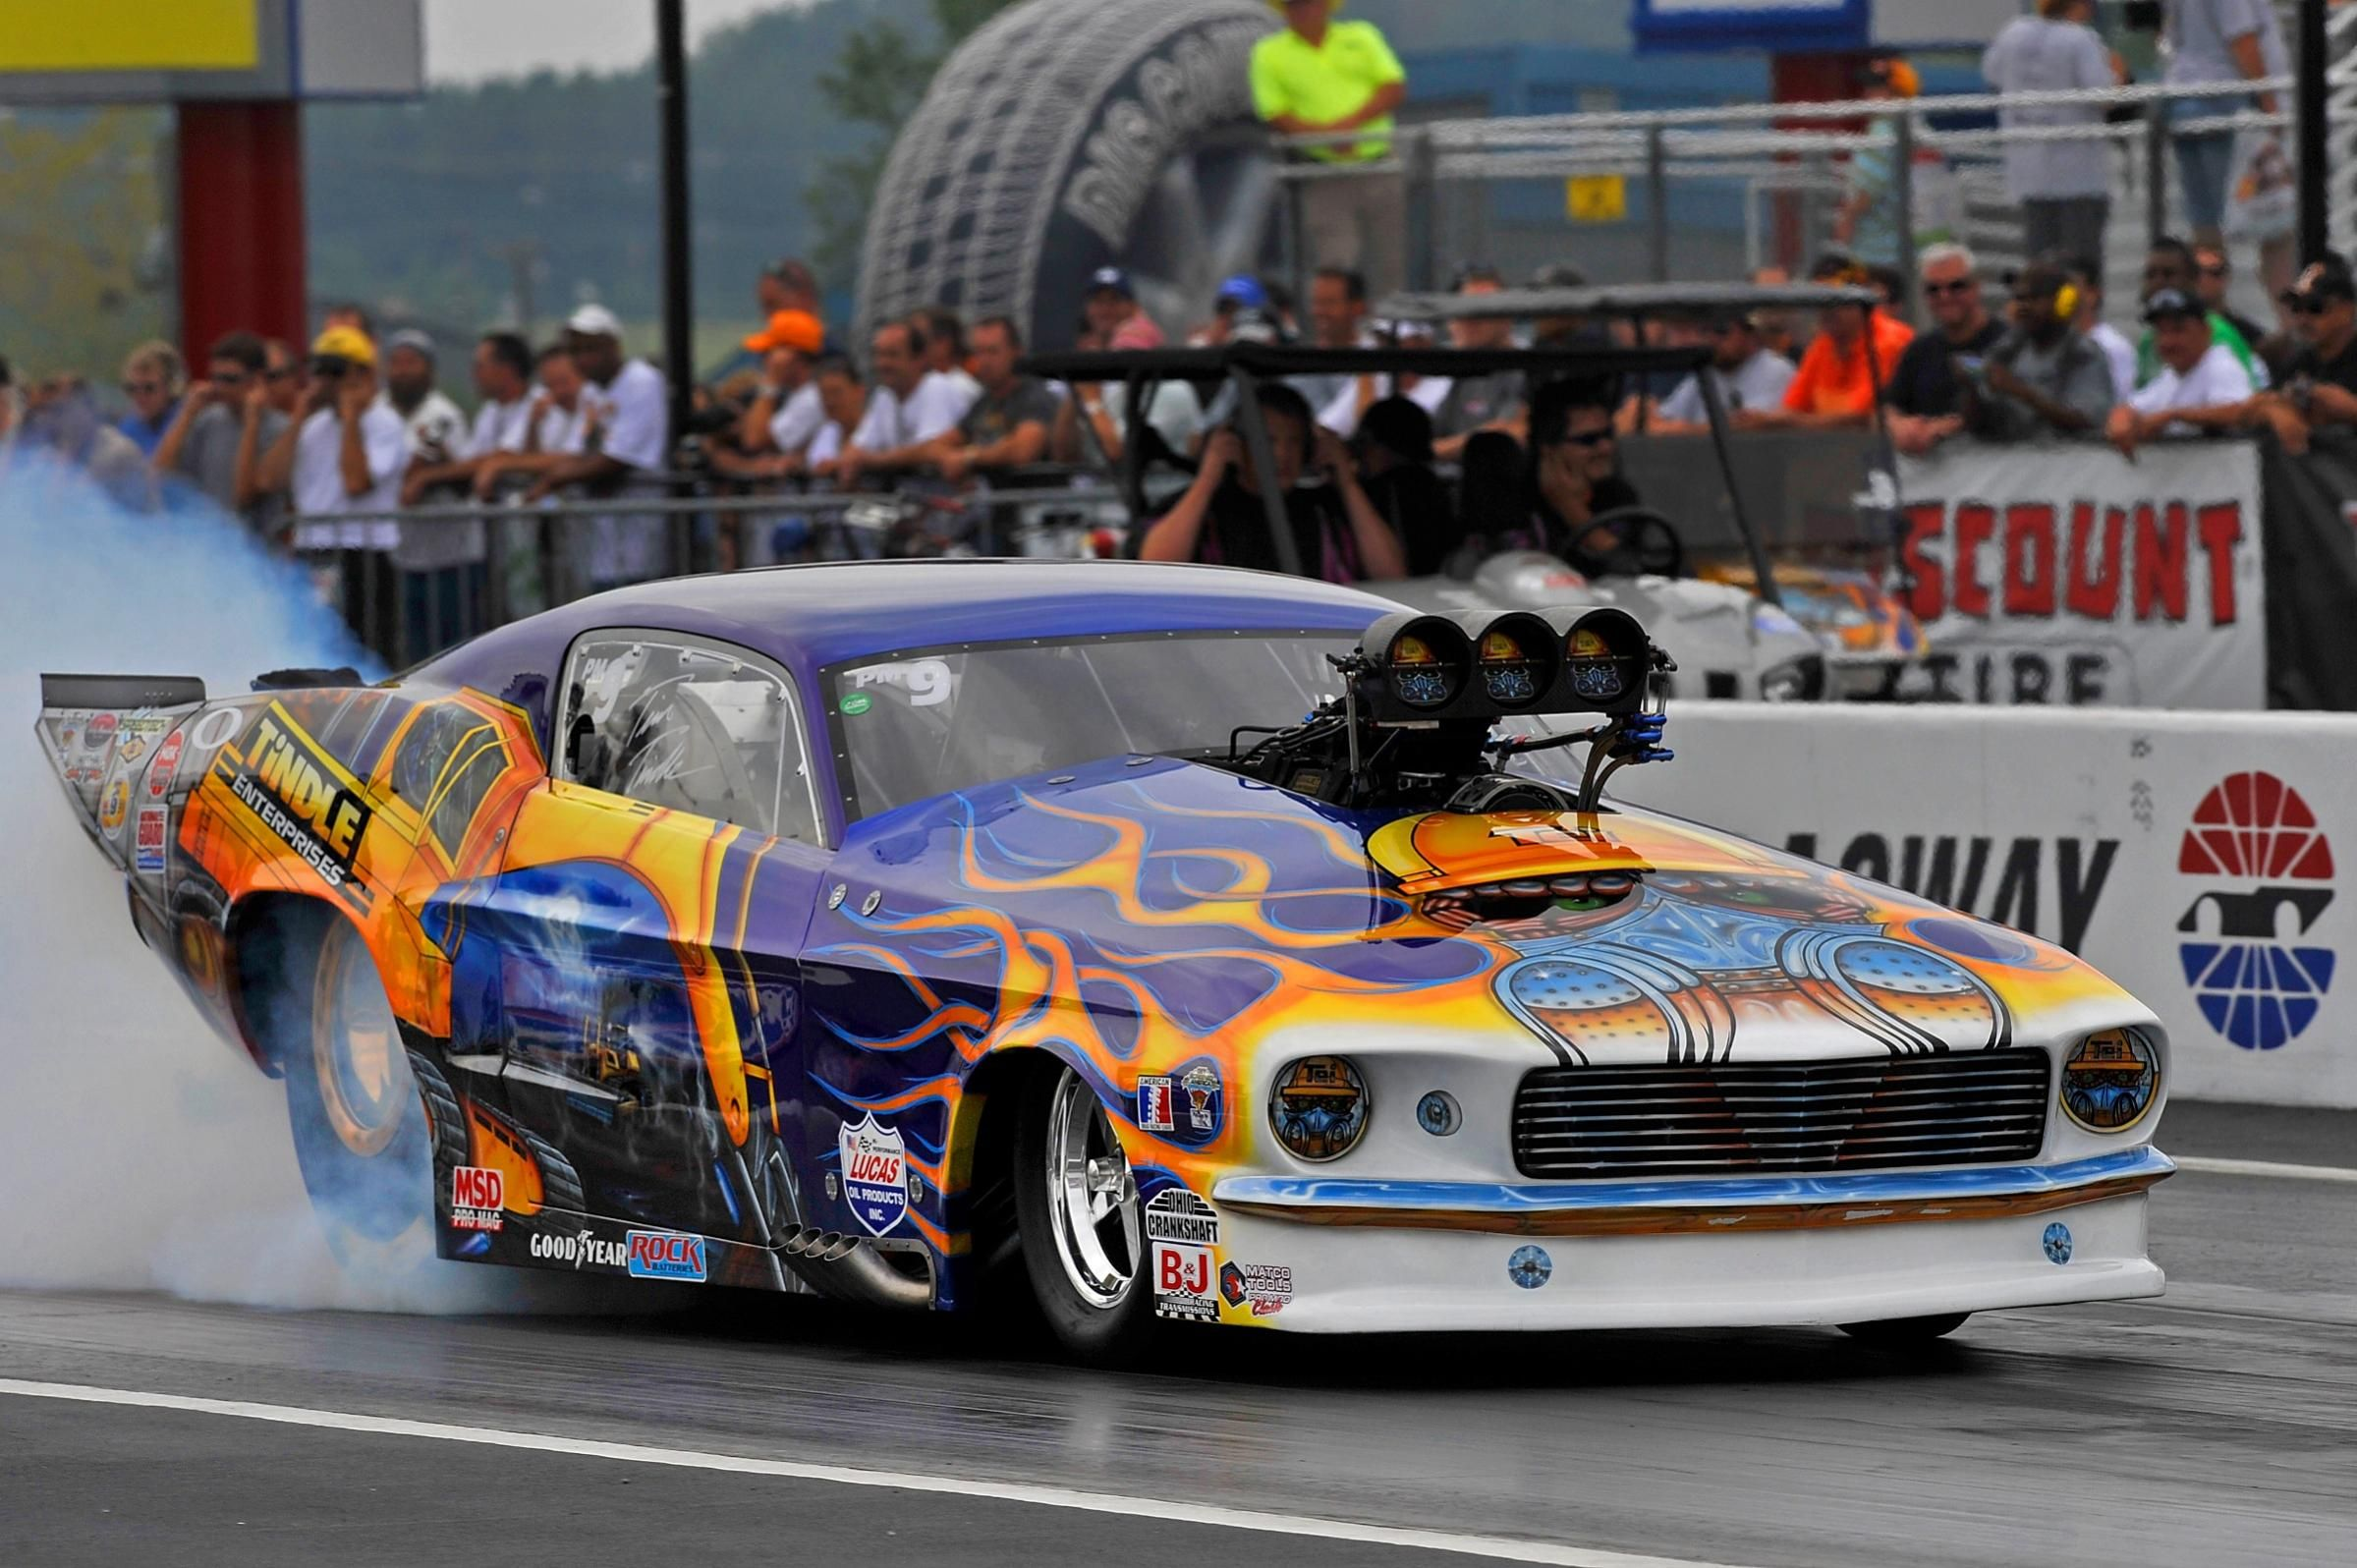 Nhra Google Search Drag Racing Ford Mustang Classic Drag Racing Cars